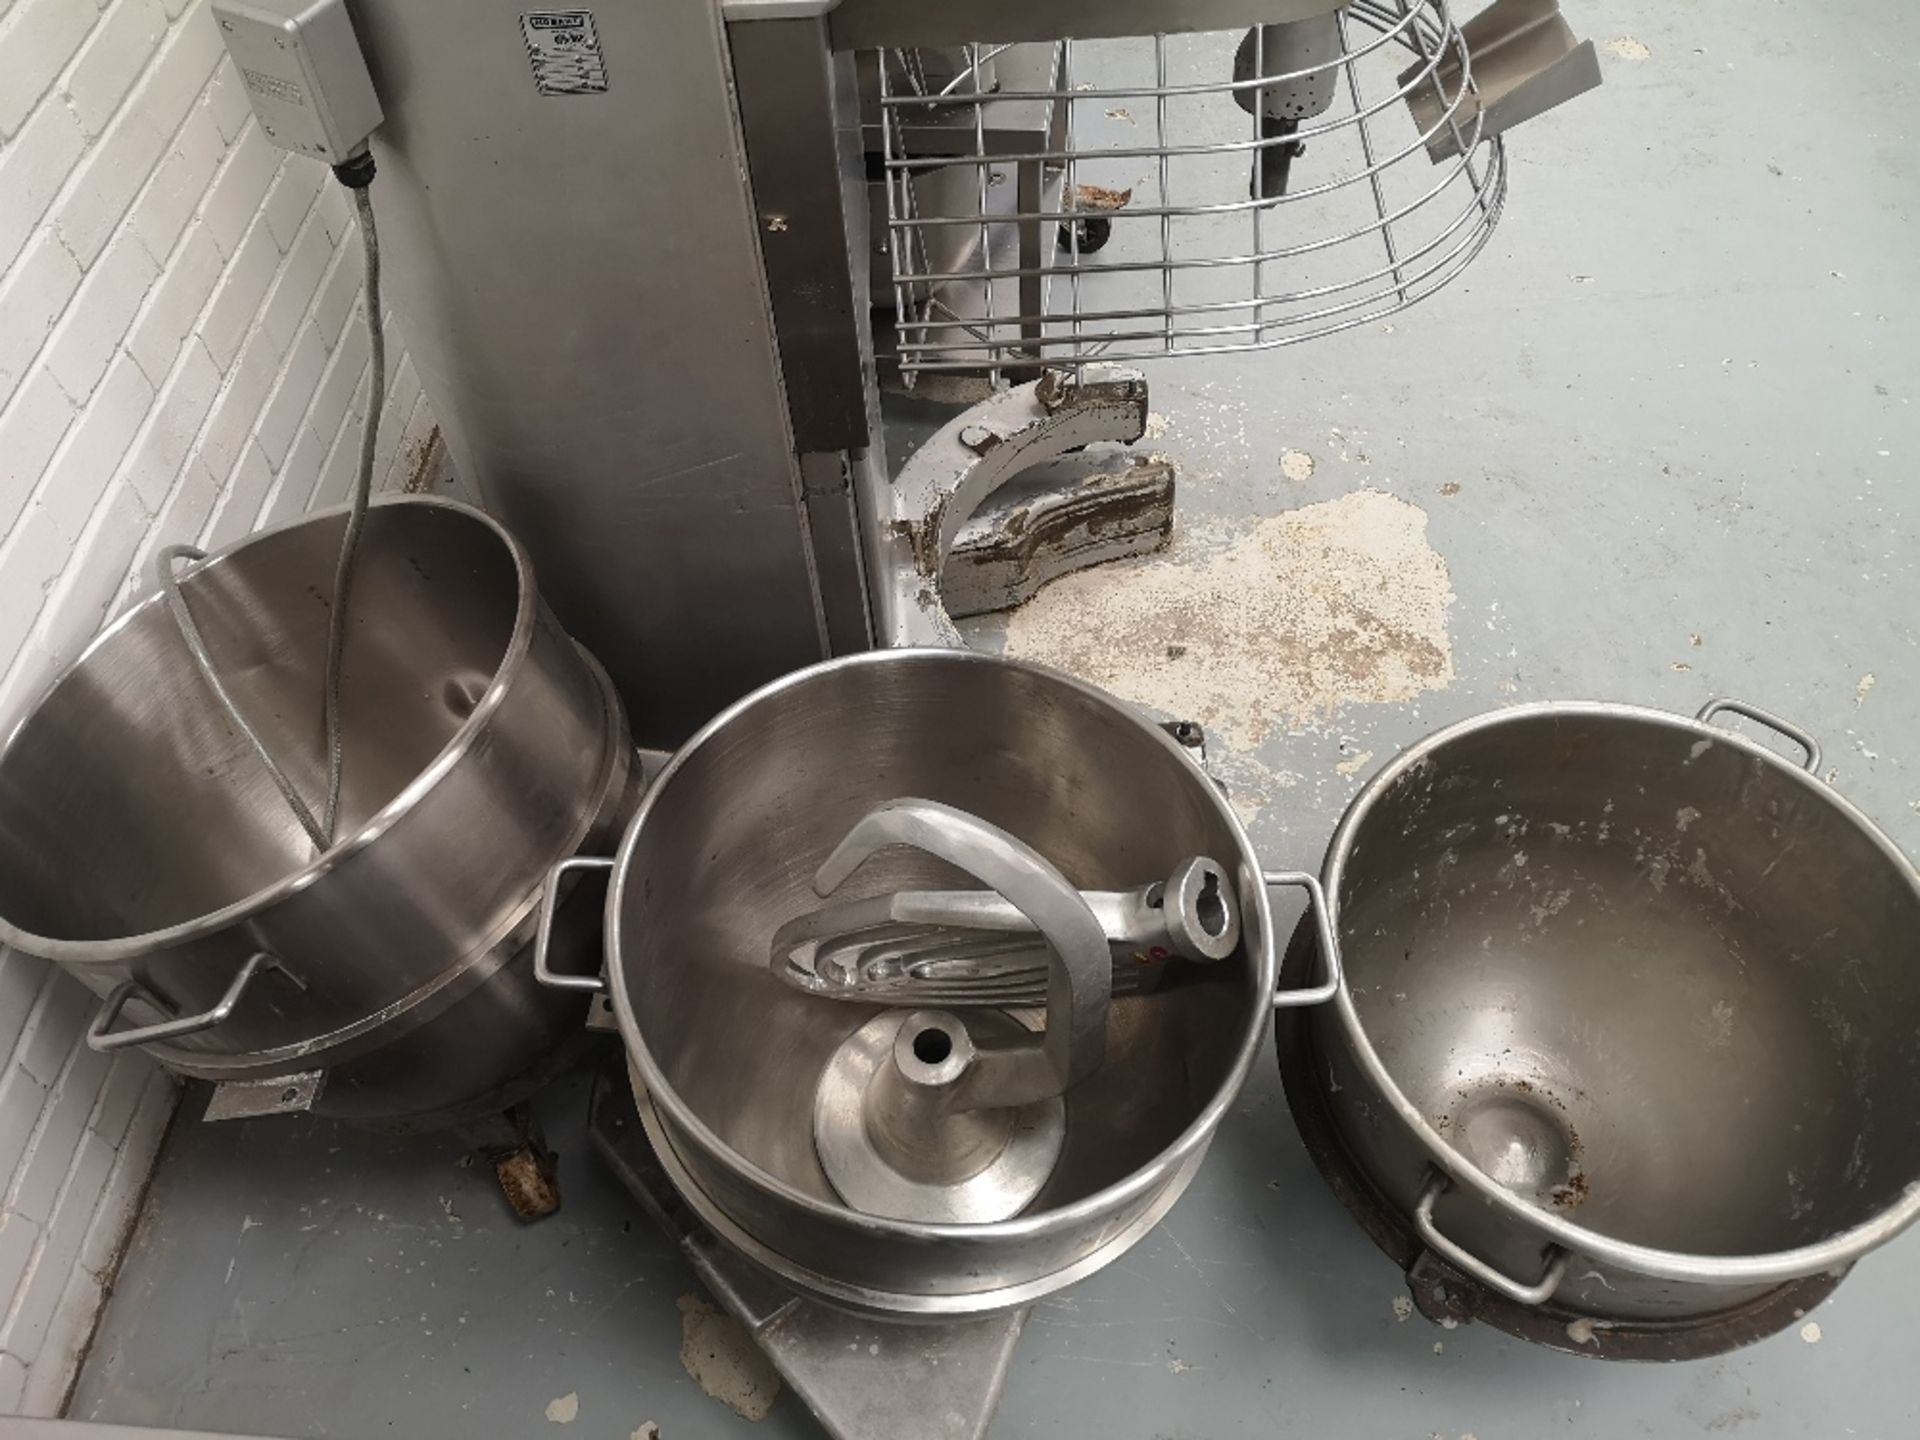 Hobart M802 80 QRT Planetary Mixer with (3) Mixing Bowls - Image 6 of 8